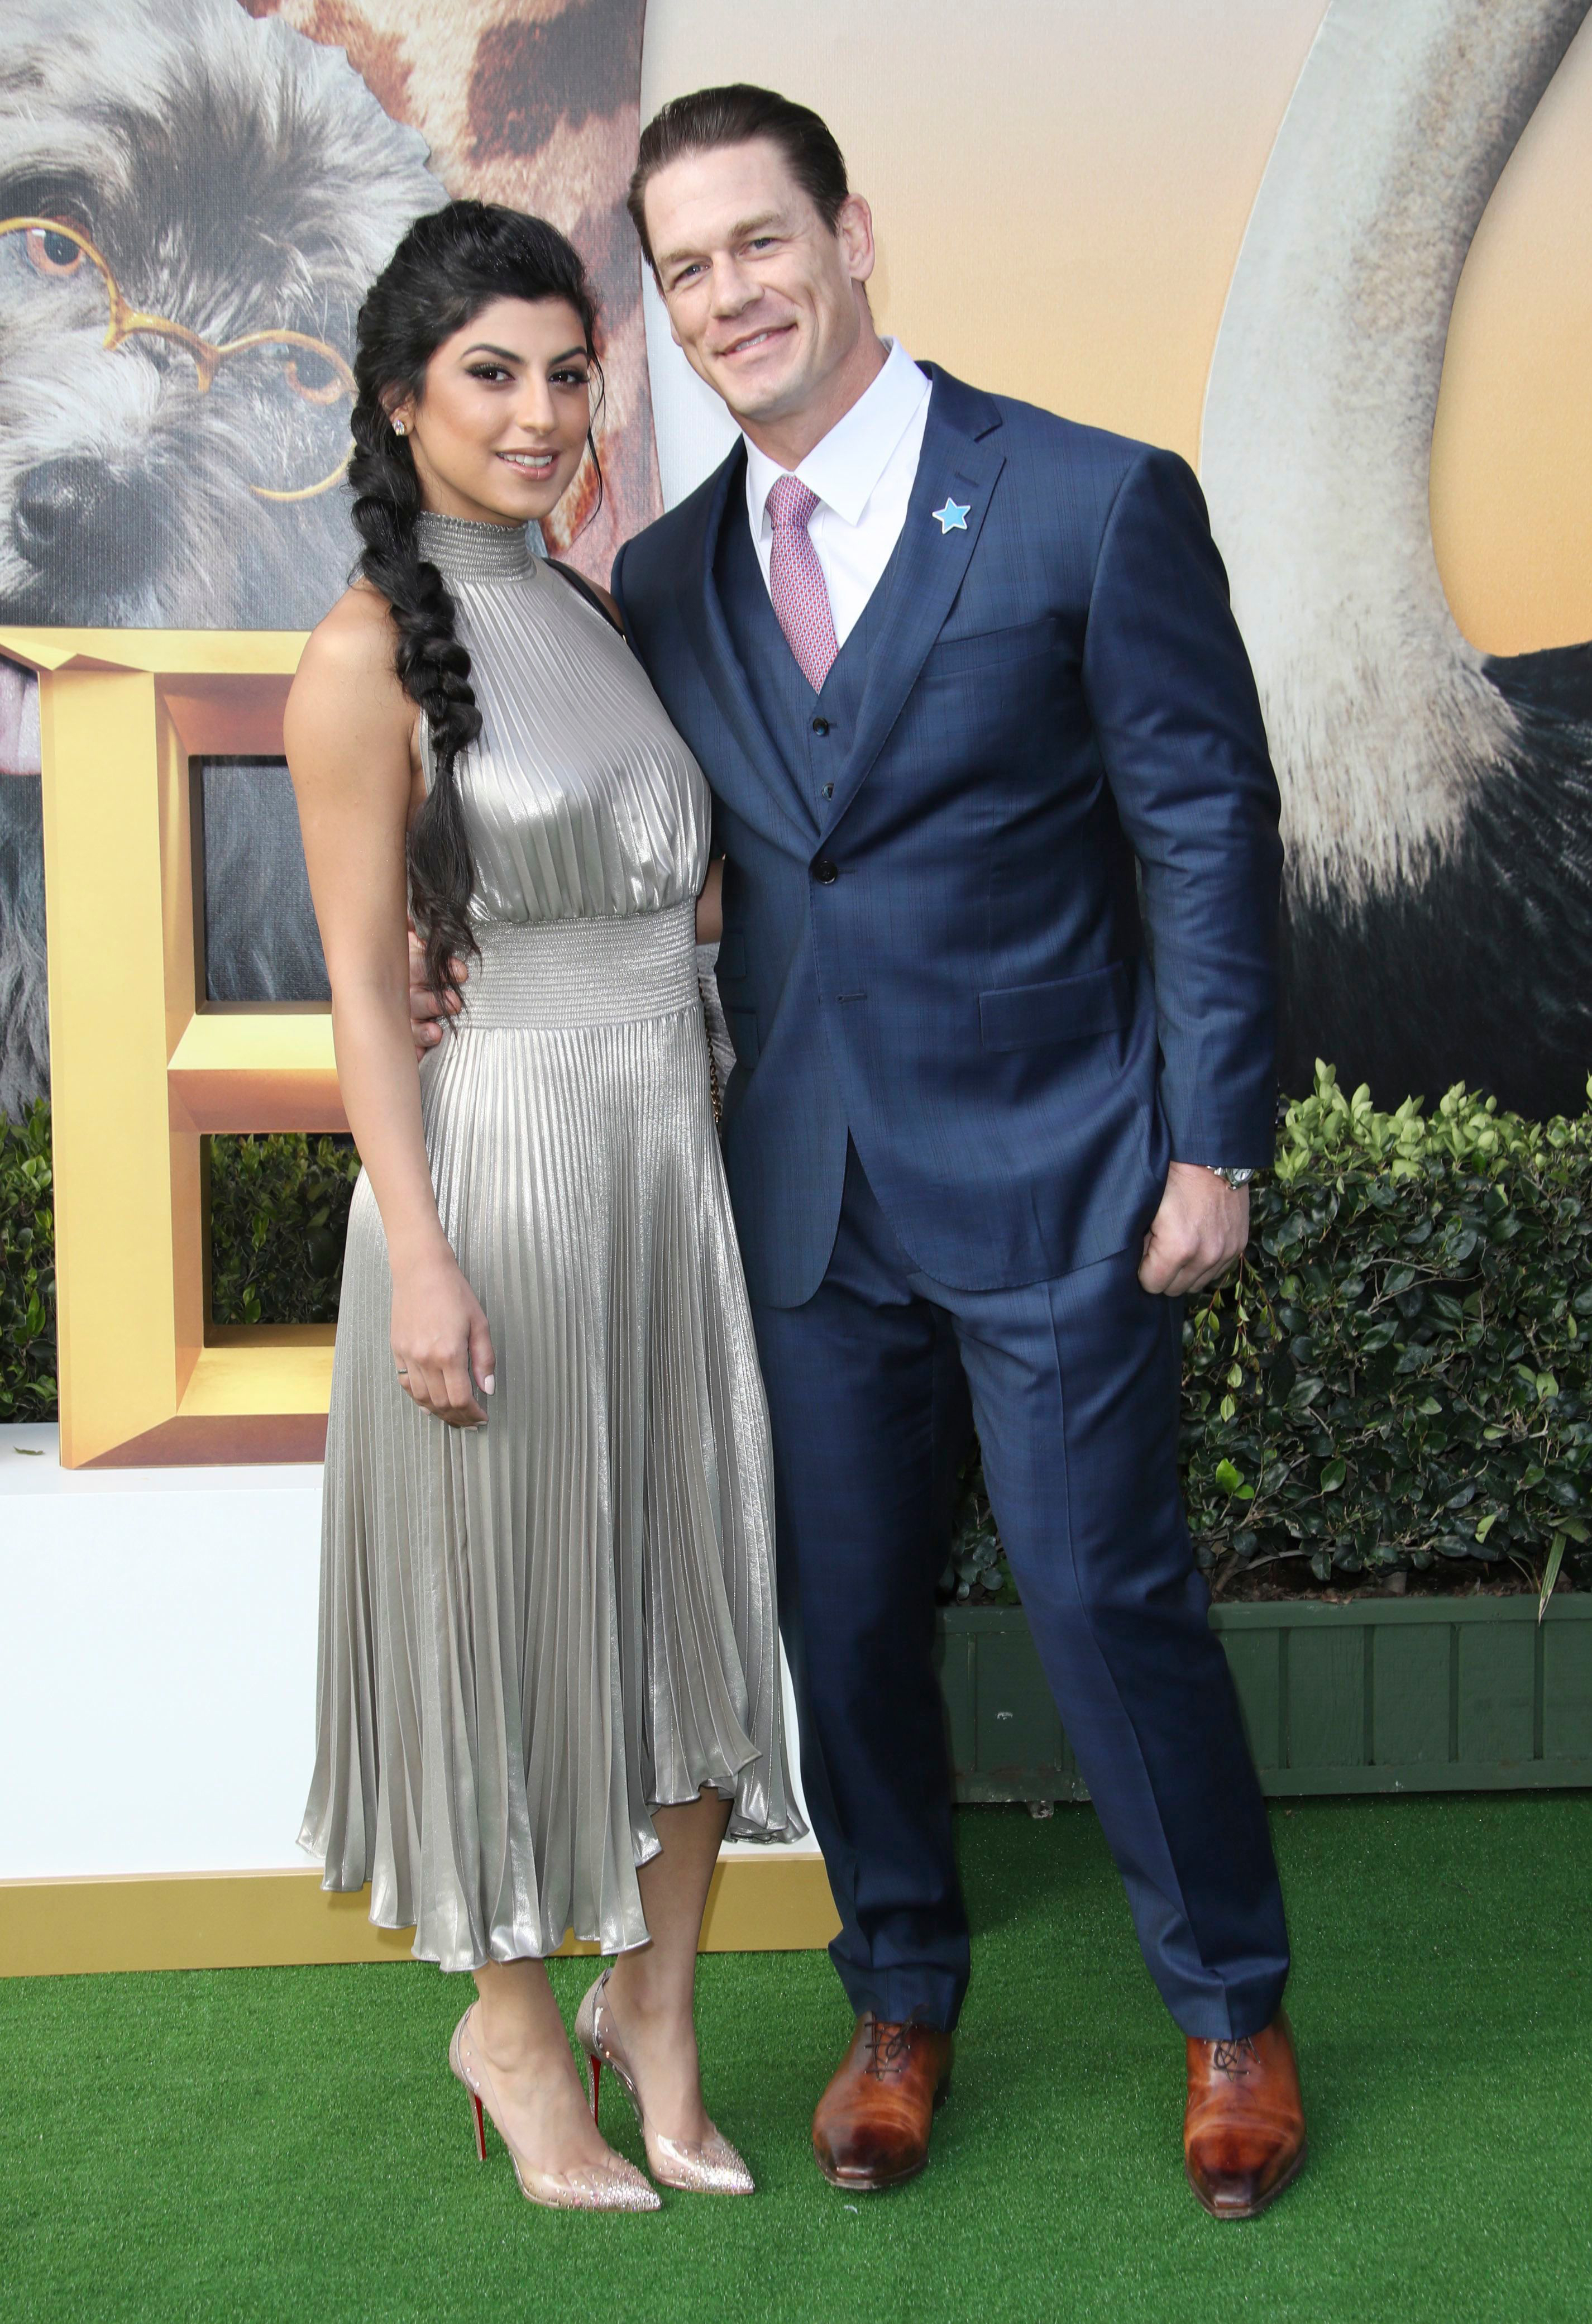 John Cena's Girlfriend Shay Shariatzadeh Was 'Totally Comfortable' at 'Dolittle' Red Carpet Premiere